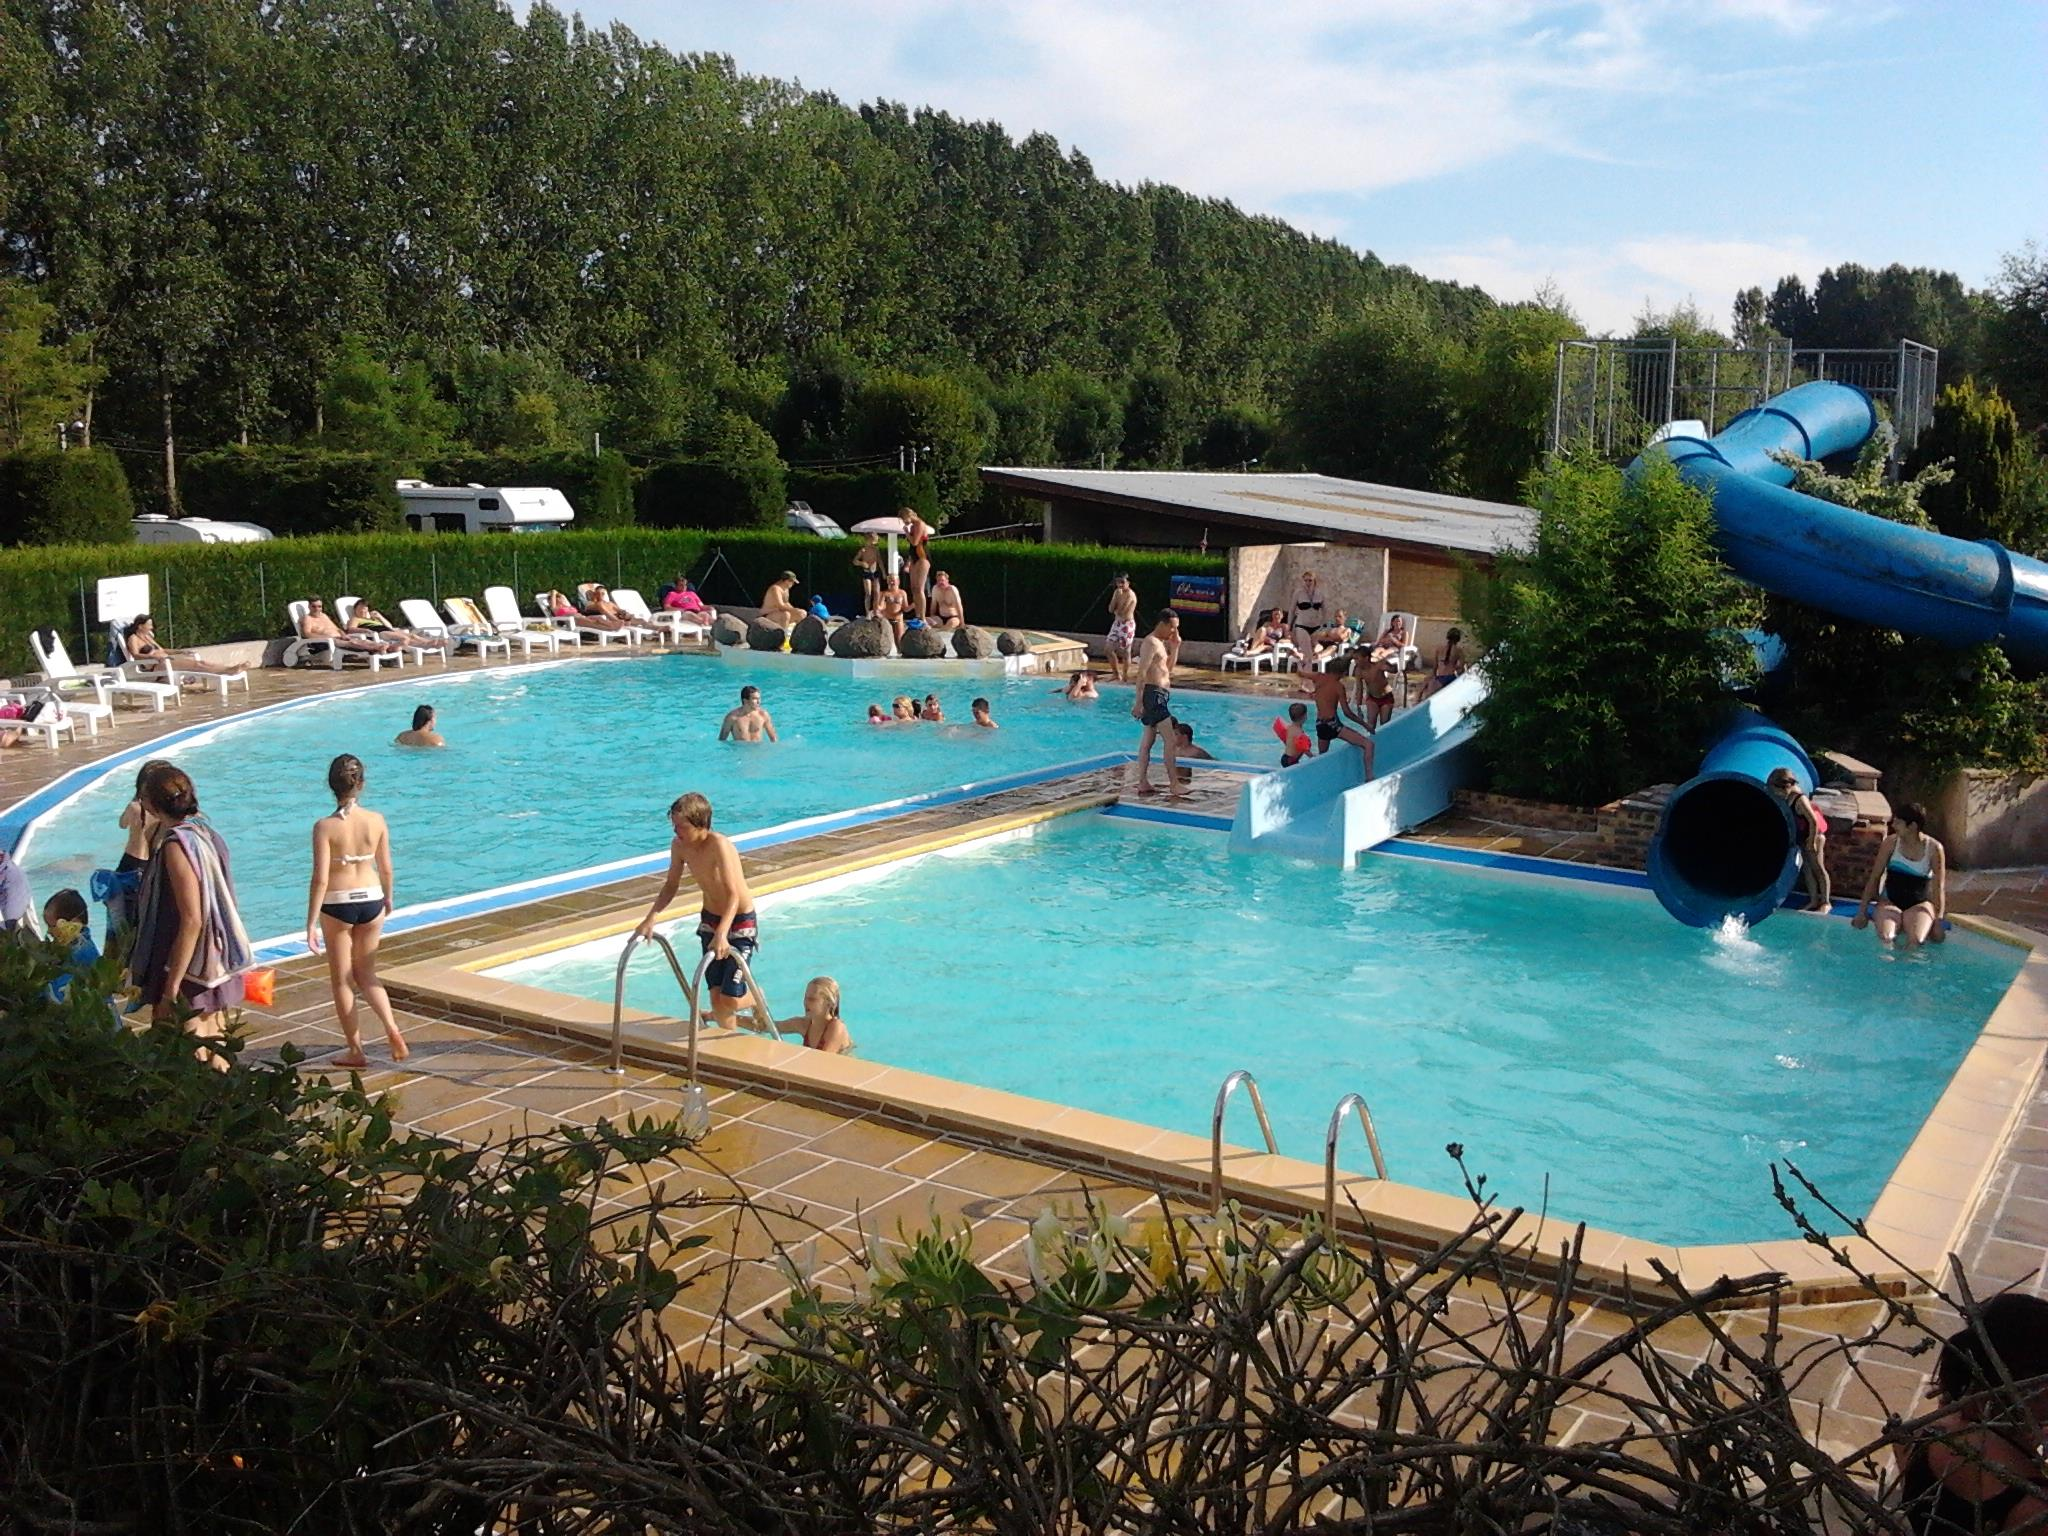 Establishment Camping Les Breuils - VERDUN